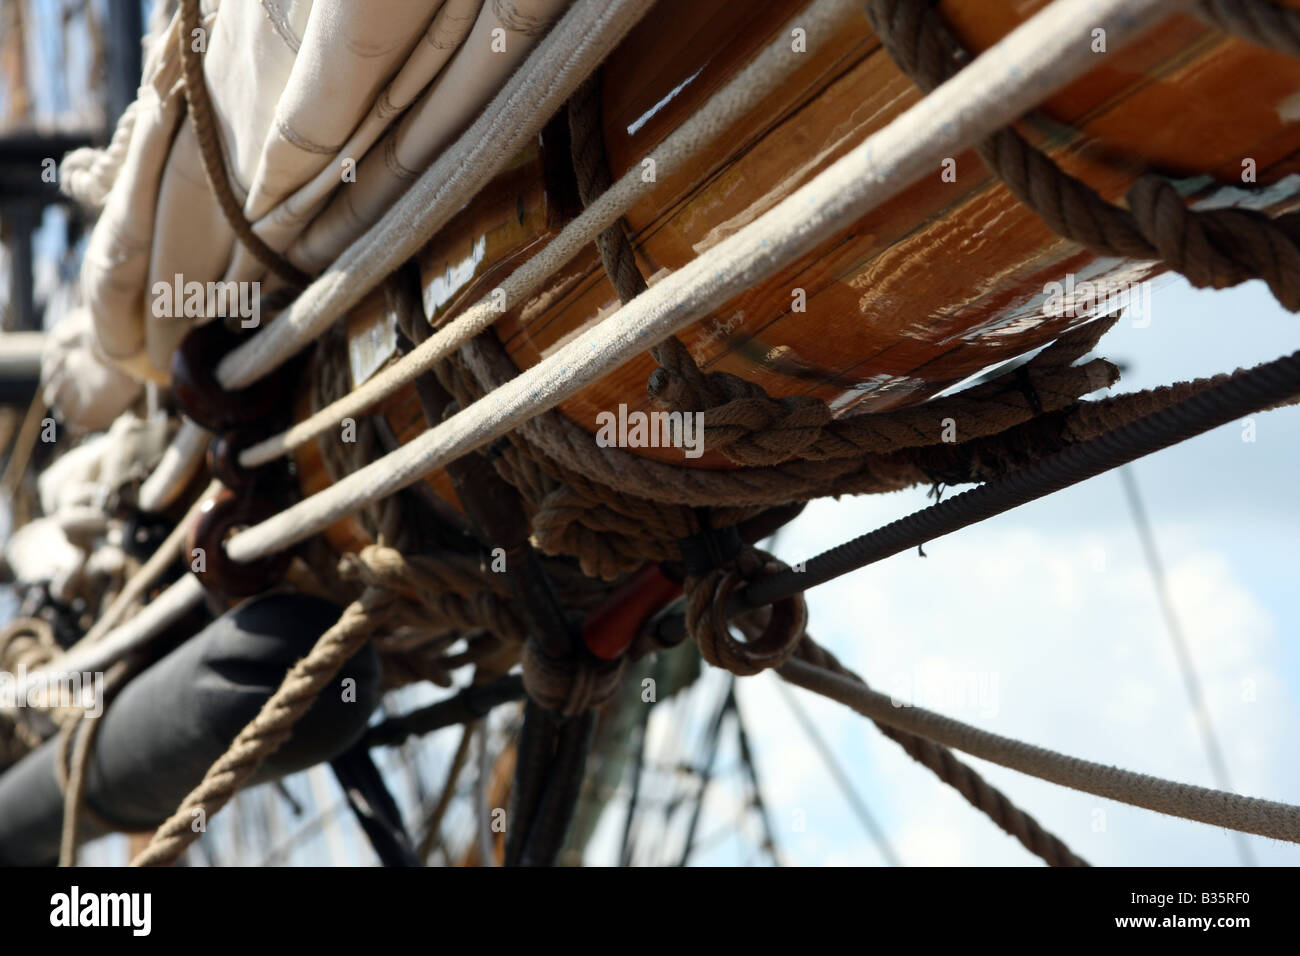 The sails and rigging on the Pride of the Baltimore Ship - Stock Image